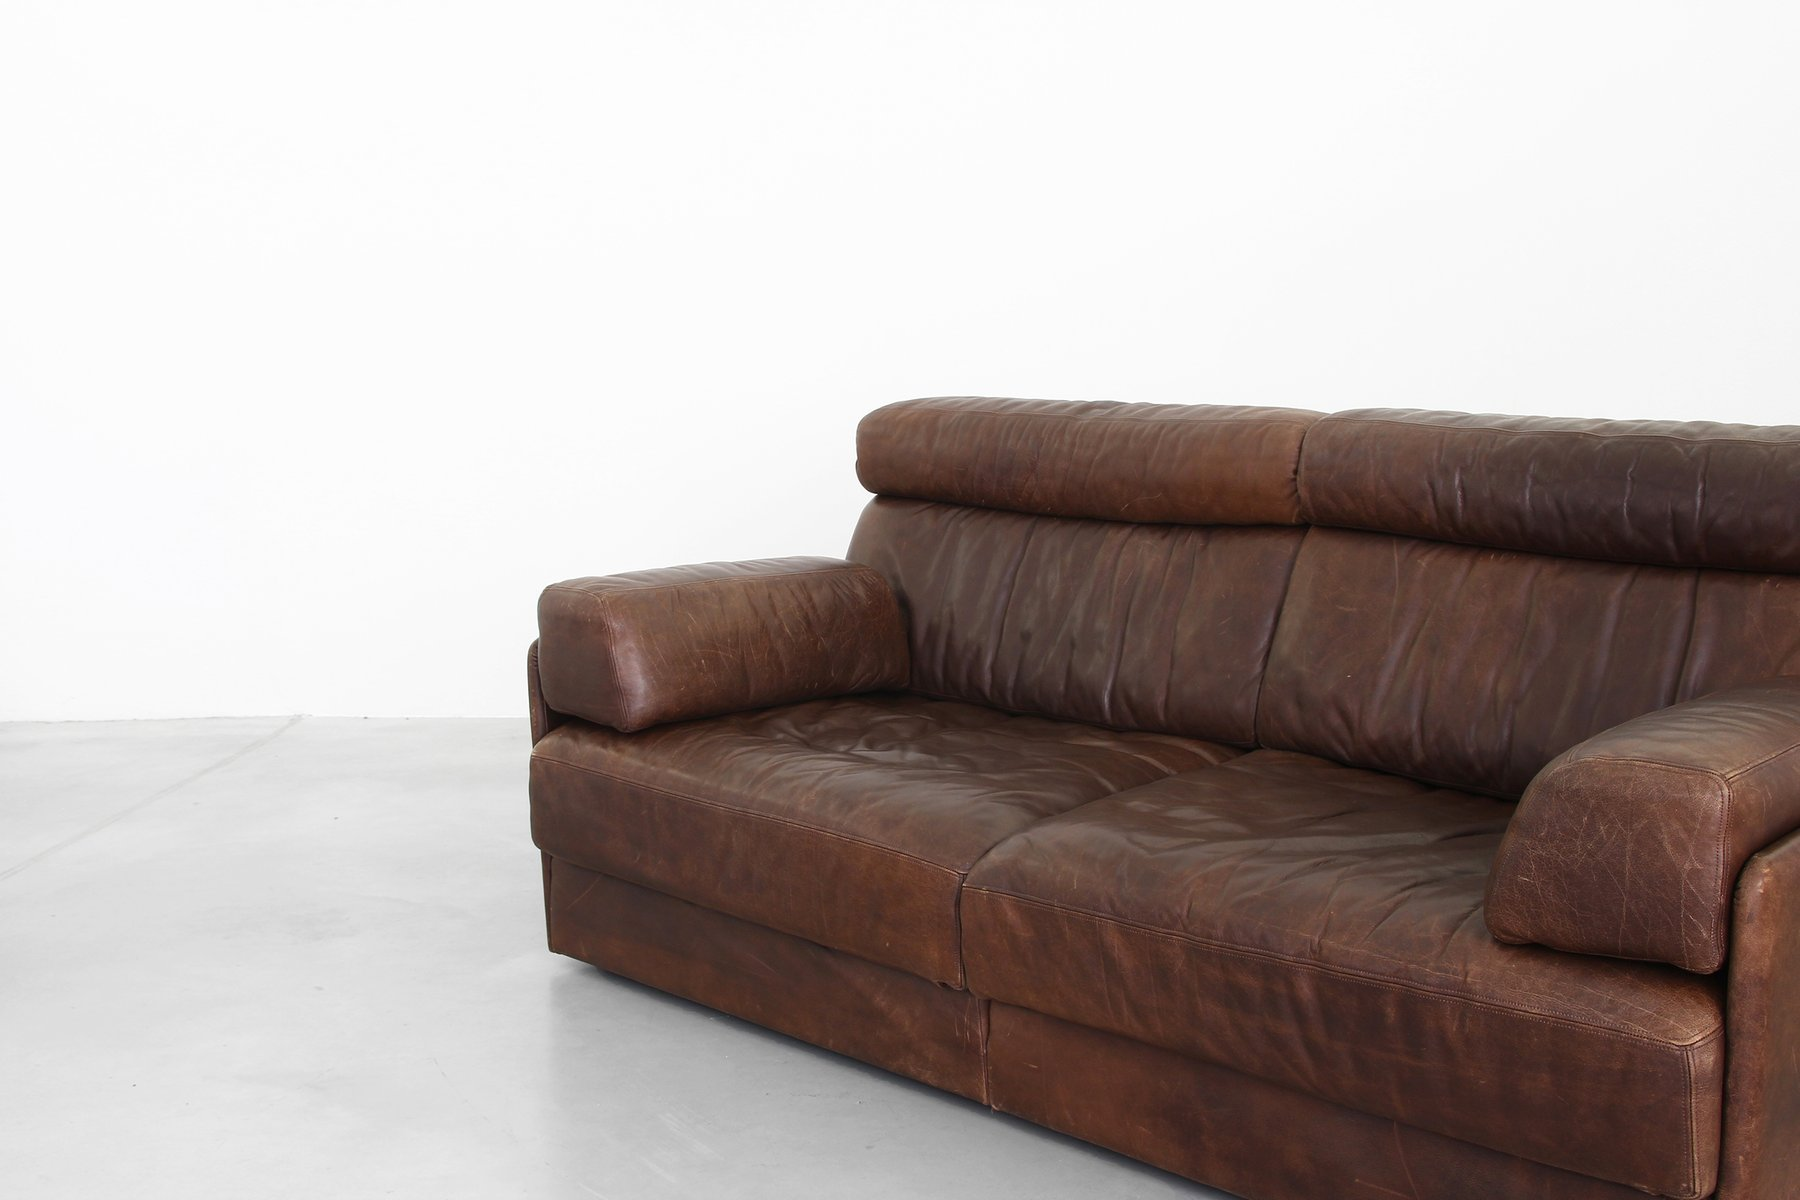 Vintage Model Ds 76 Brown Leather Sofa From De Sede For Sale At Pamono